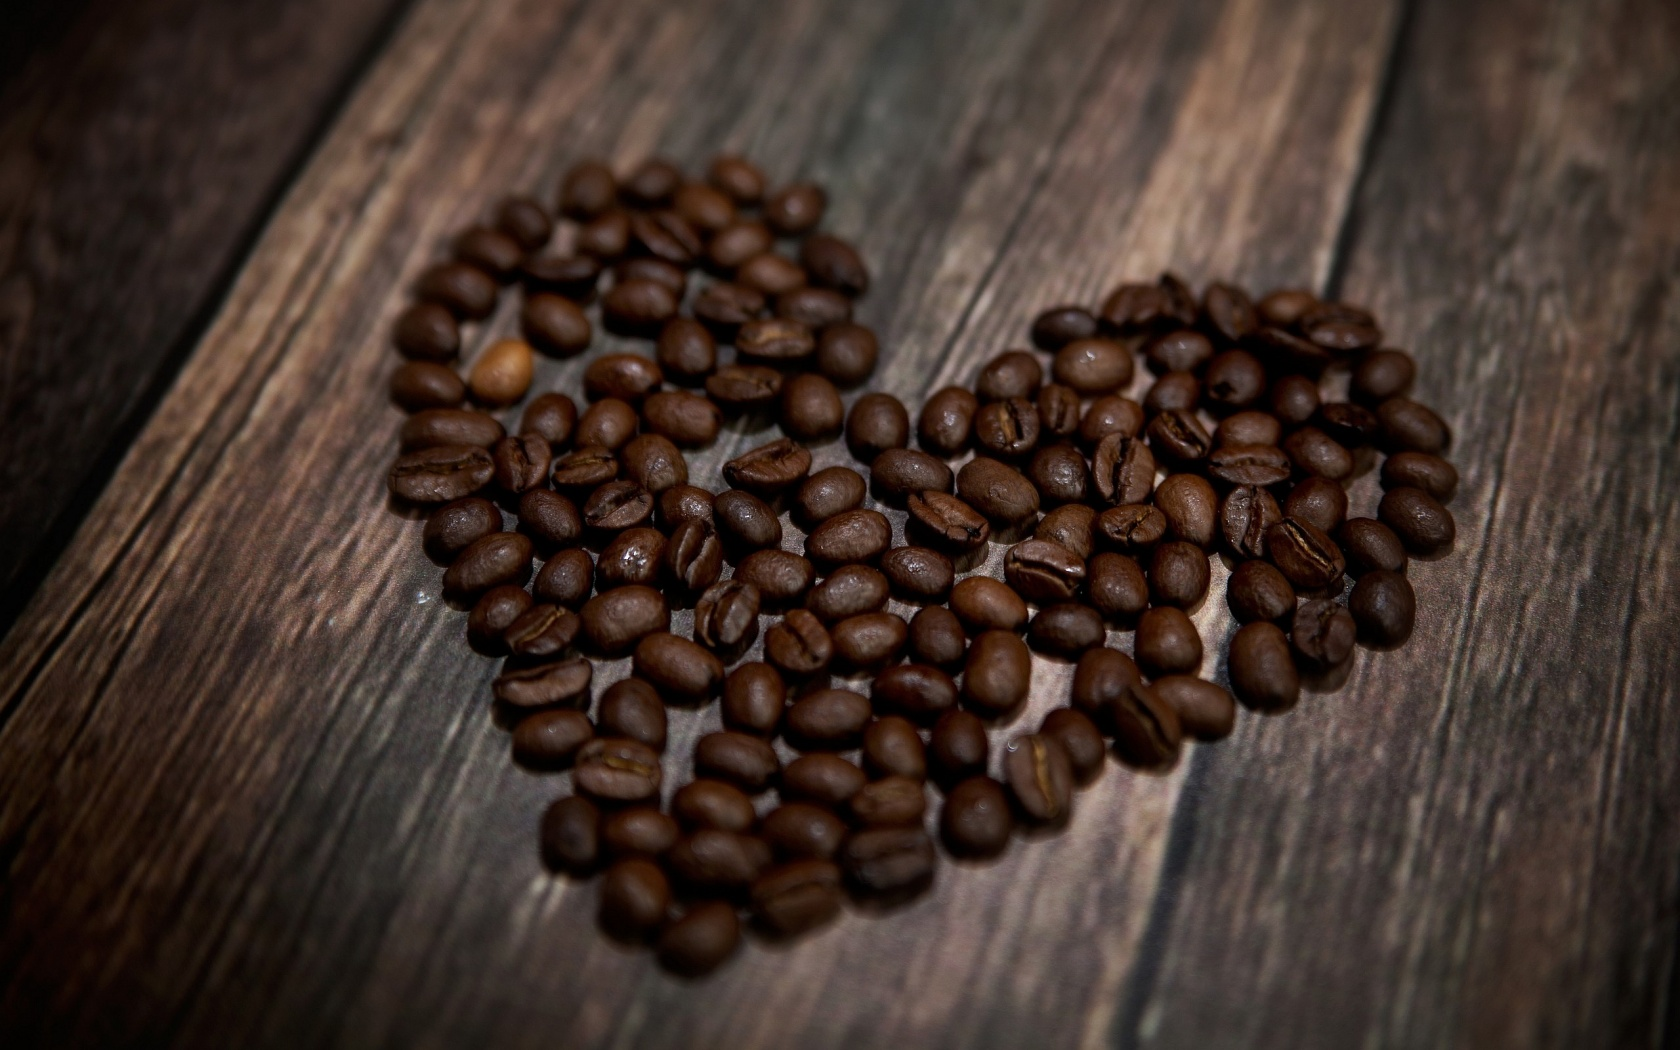 Cute Coffee Beans Wallpaper